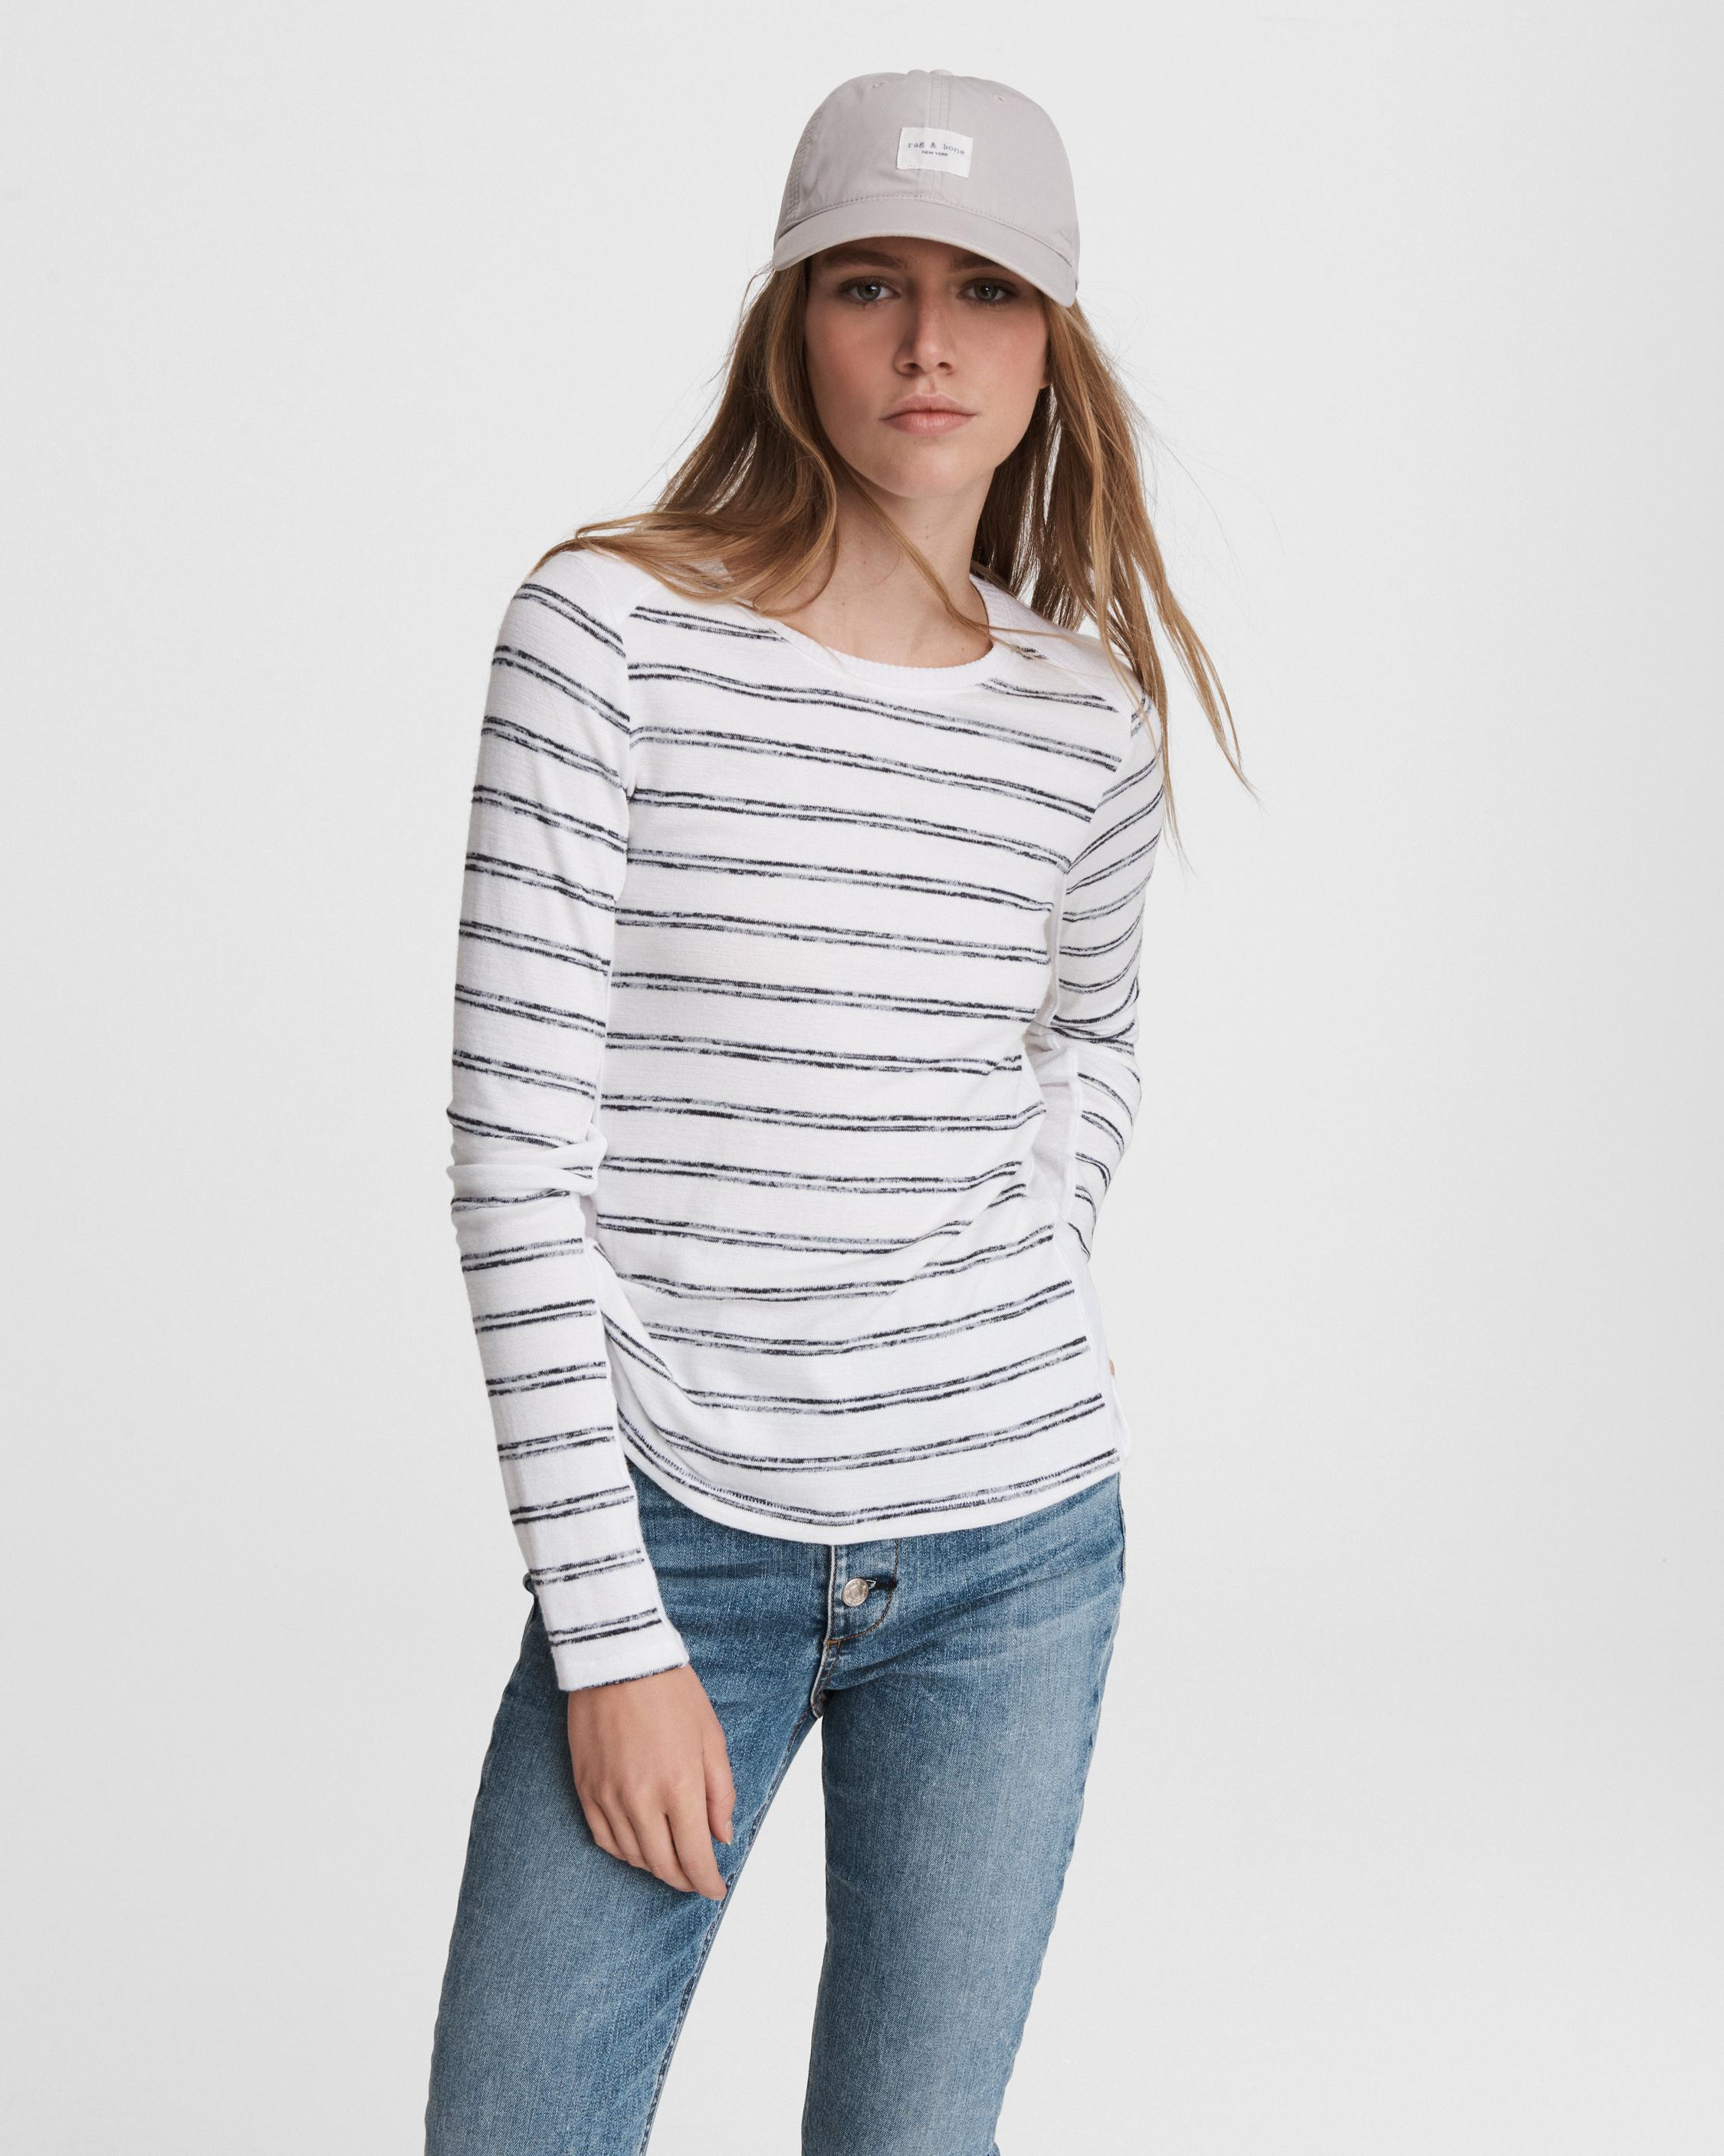 The knit summer striped long sleeve